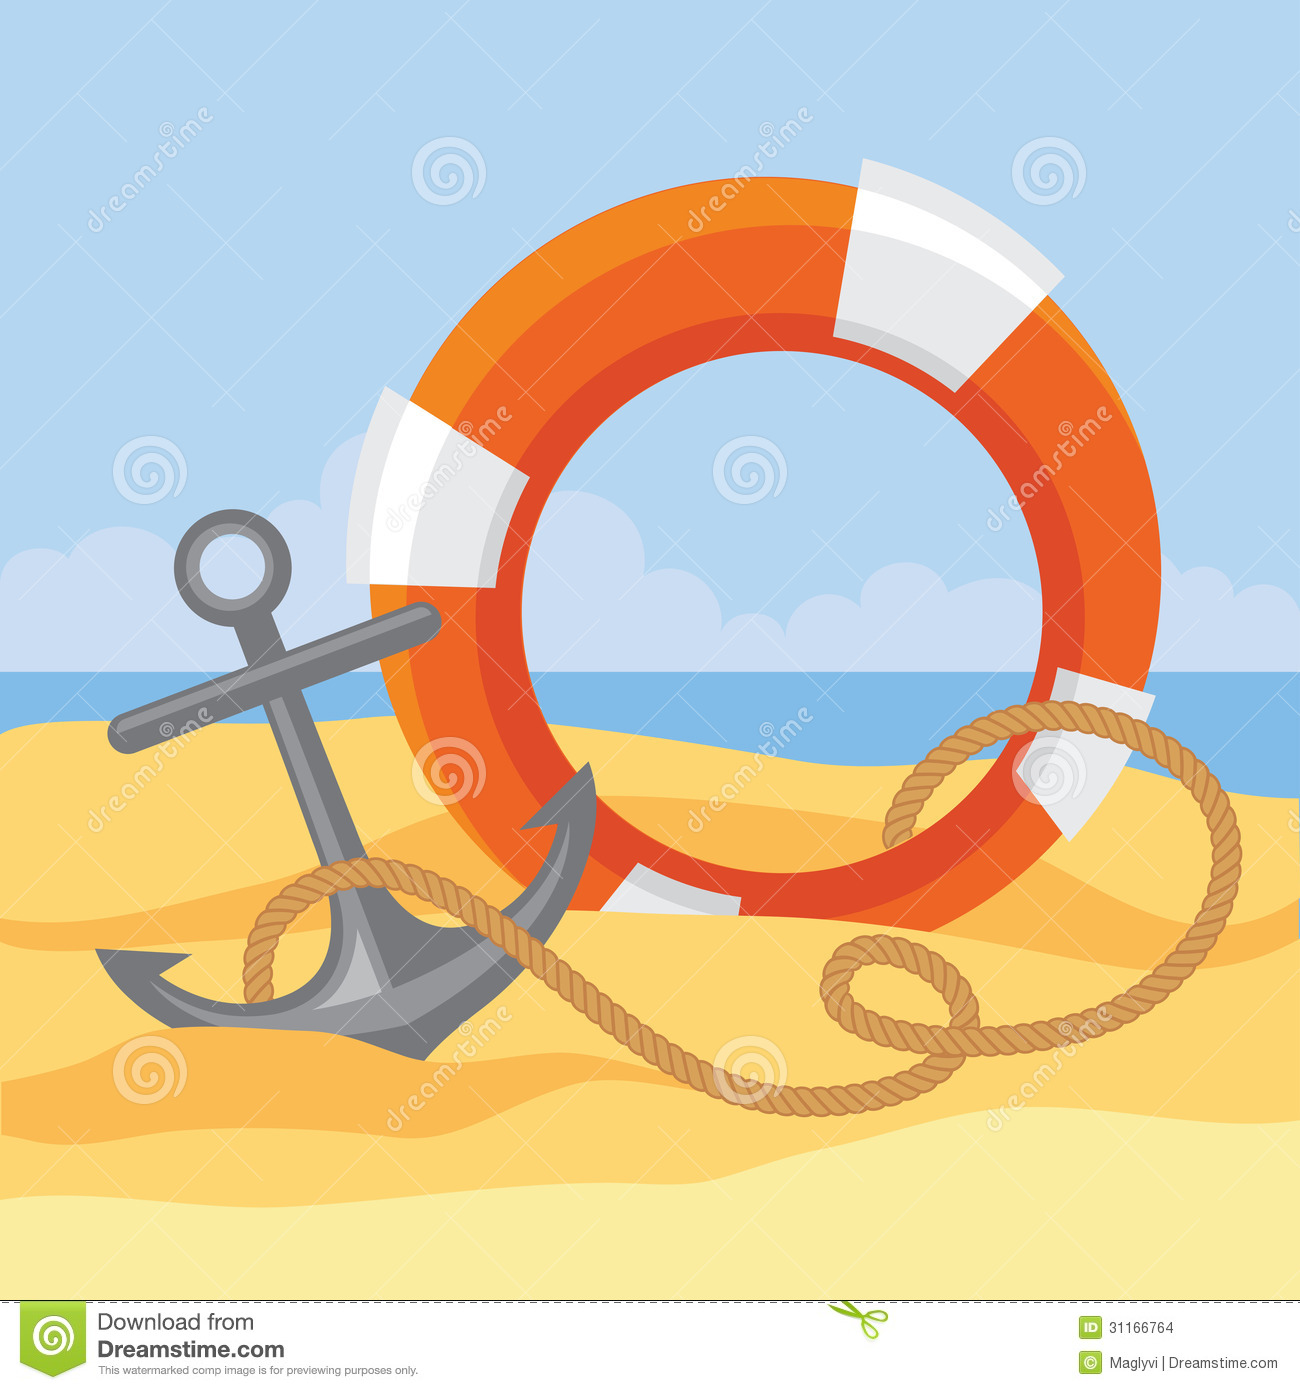 Lifebuoy, anchor and rope